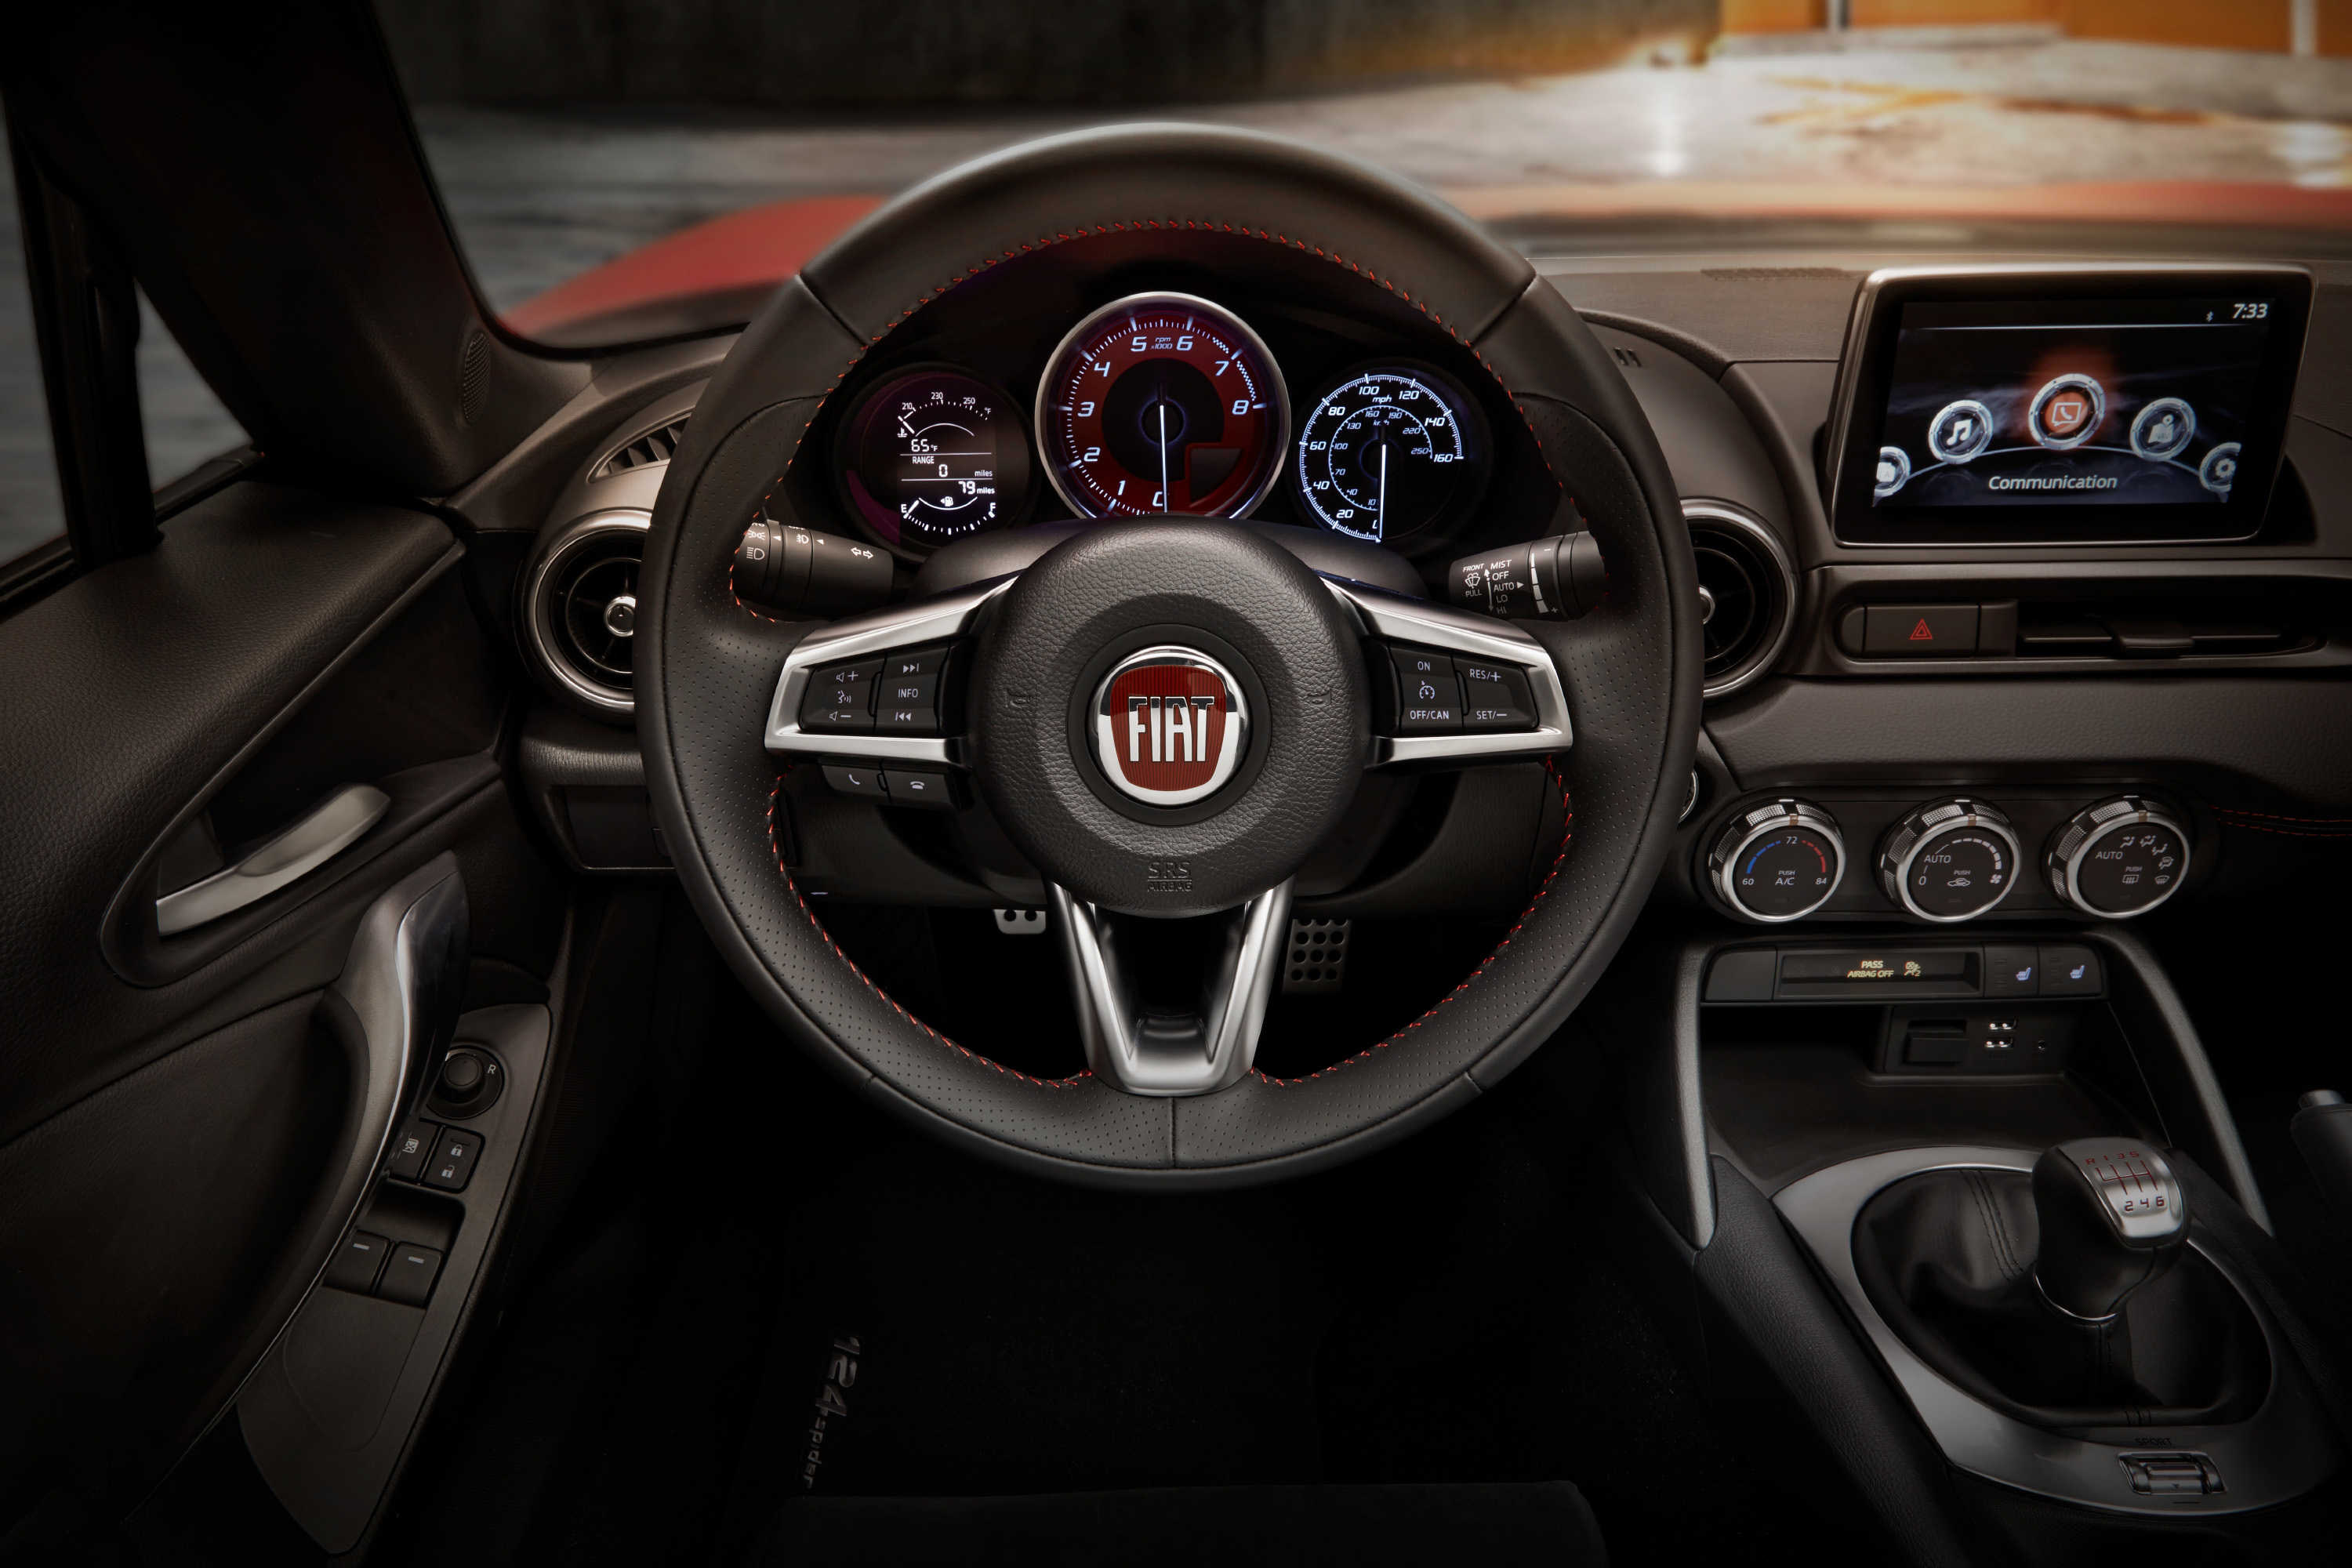 The 2017 Fiat 124 Spider's interior picks up the nice touches that inhabit the Mazda MX-5.